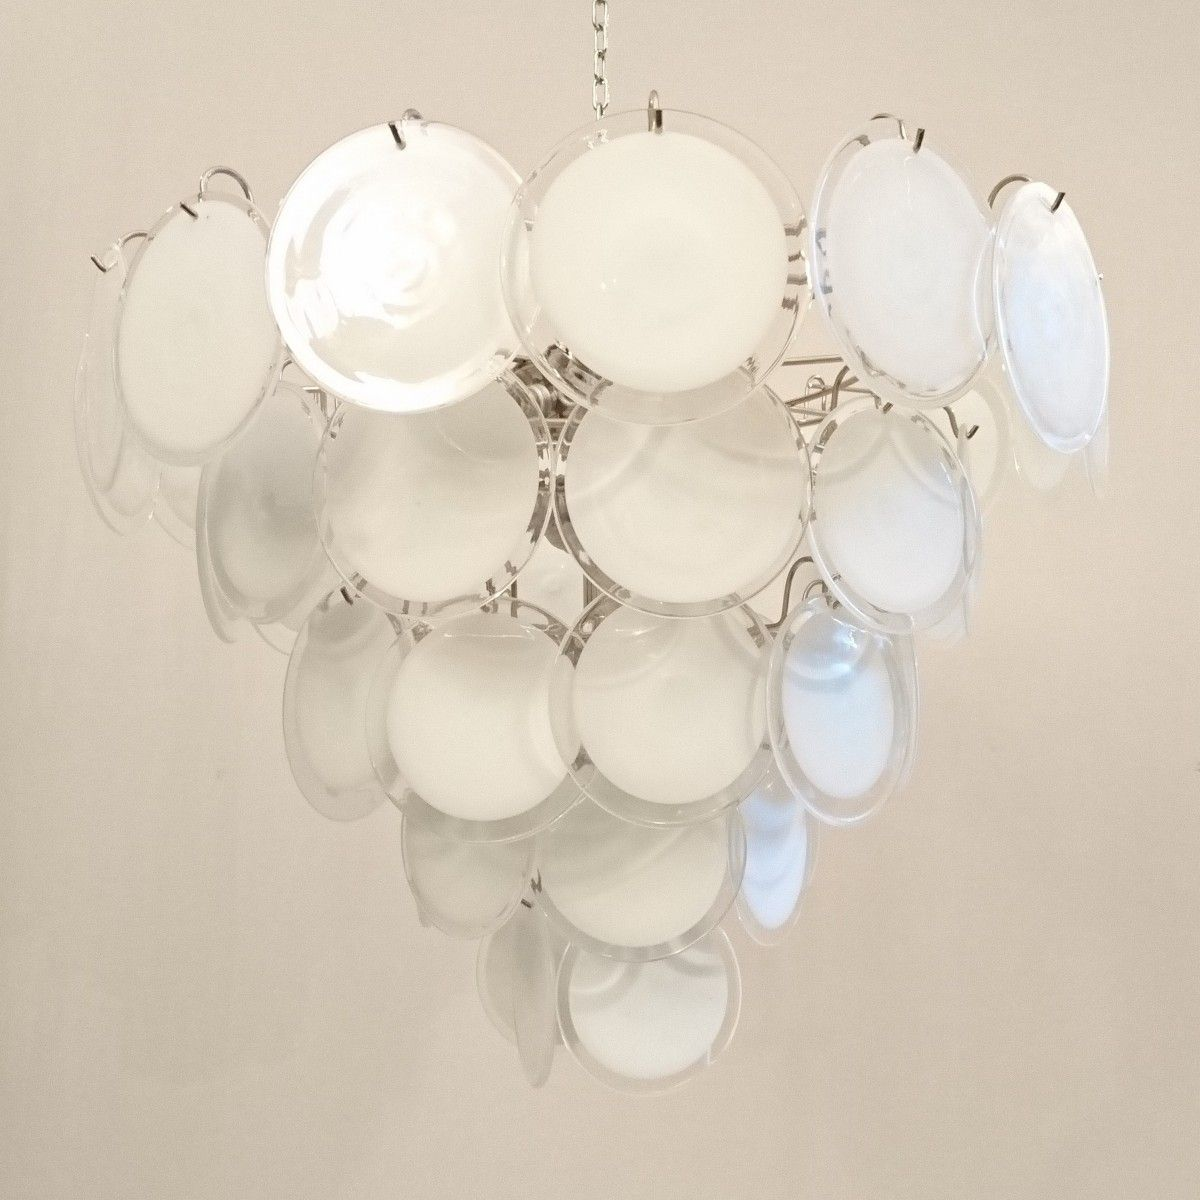 Five tiered chandelier by gino vistosi for vistosi 1960s bedroom five tiered chandelier by gino vistosi for vistosi 1960s aloadofball Images